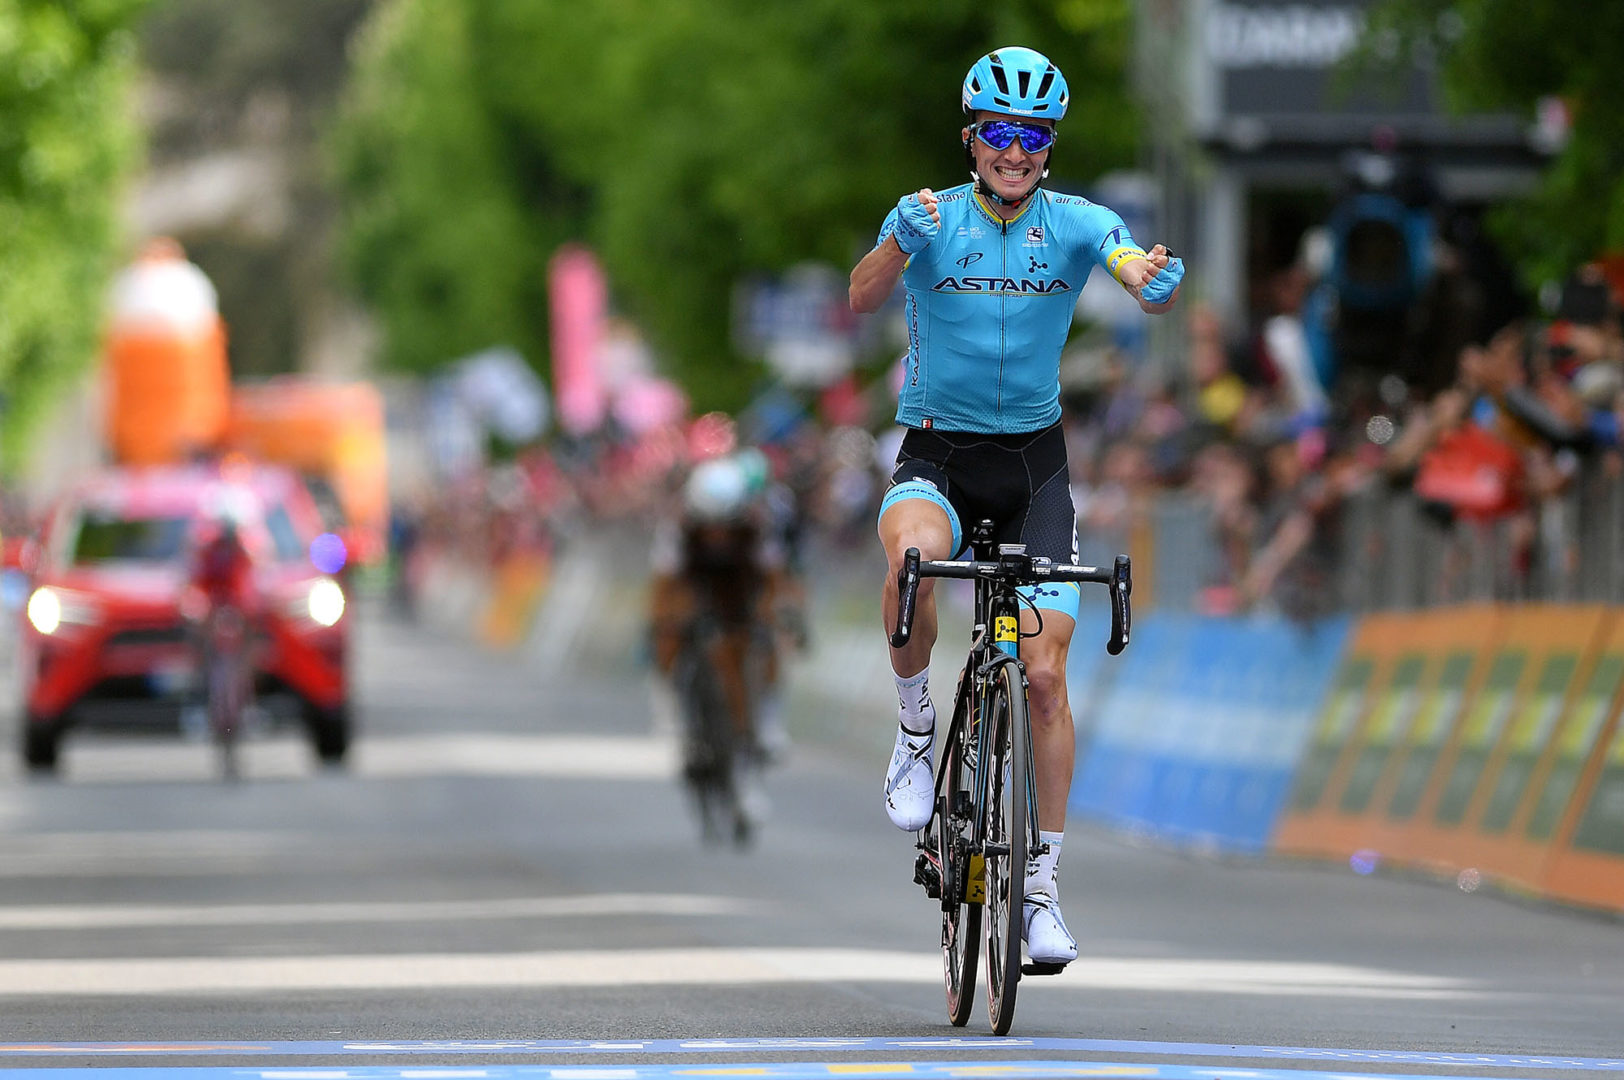 L'AQUILA, ITALY - MAY 17: Arrival / Pello Bilbao of Spain and Astana Pro Team / Celebration / during the 102nd Giro d'Italia 2019, Stage 7 a 185km stage from Vasto to L'Aquila 705m / Tour of Italy / #Giro / @giroditalia / on May 16, 2019 in San Giovanni, Italy.on May 17, 2019 in L'Aquila, Italy. (Photo by Justin Setterfield/Getty Images)